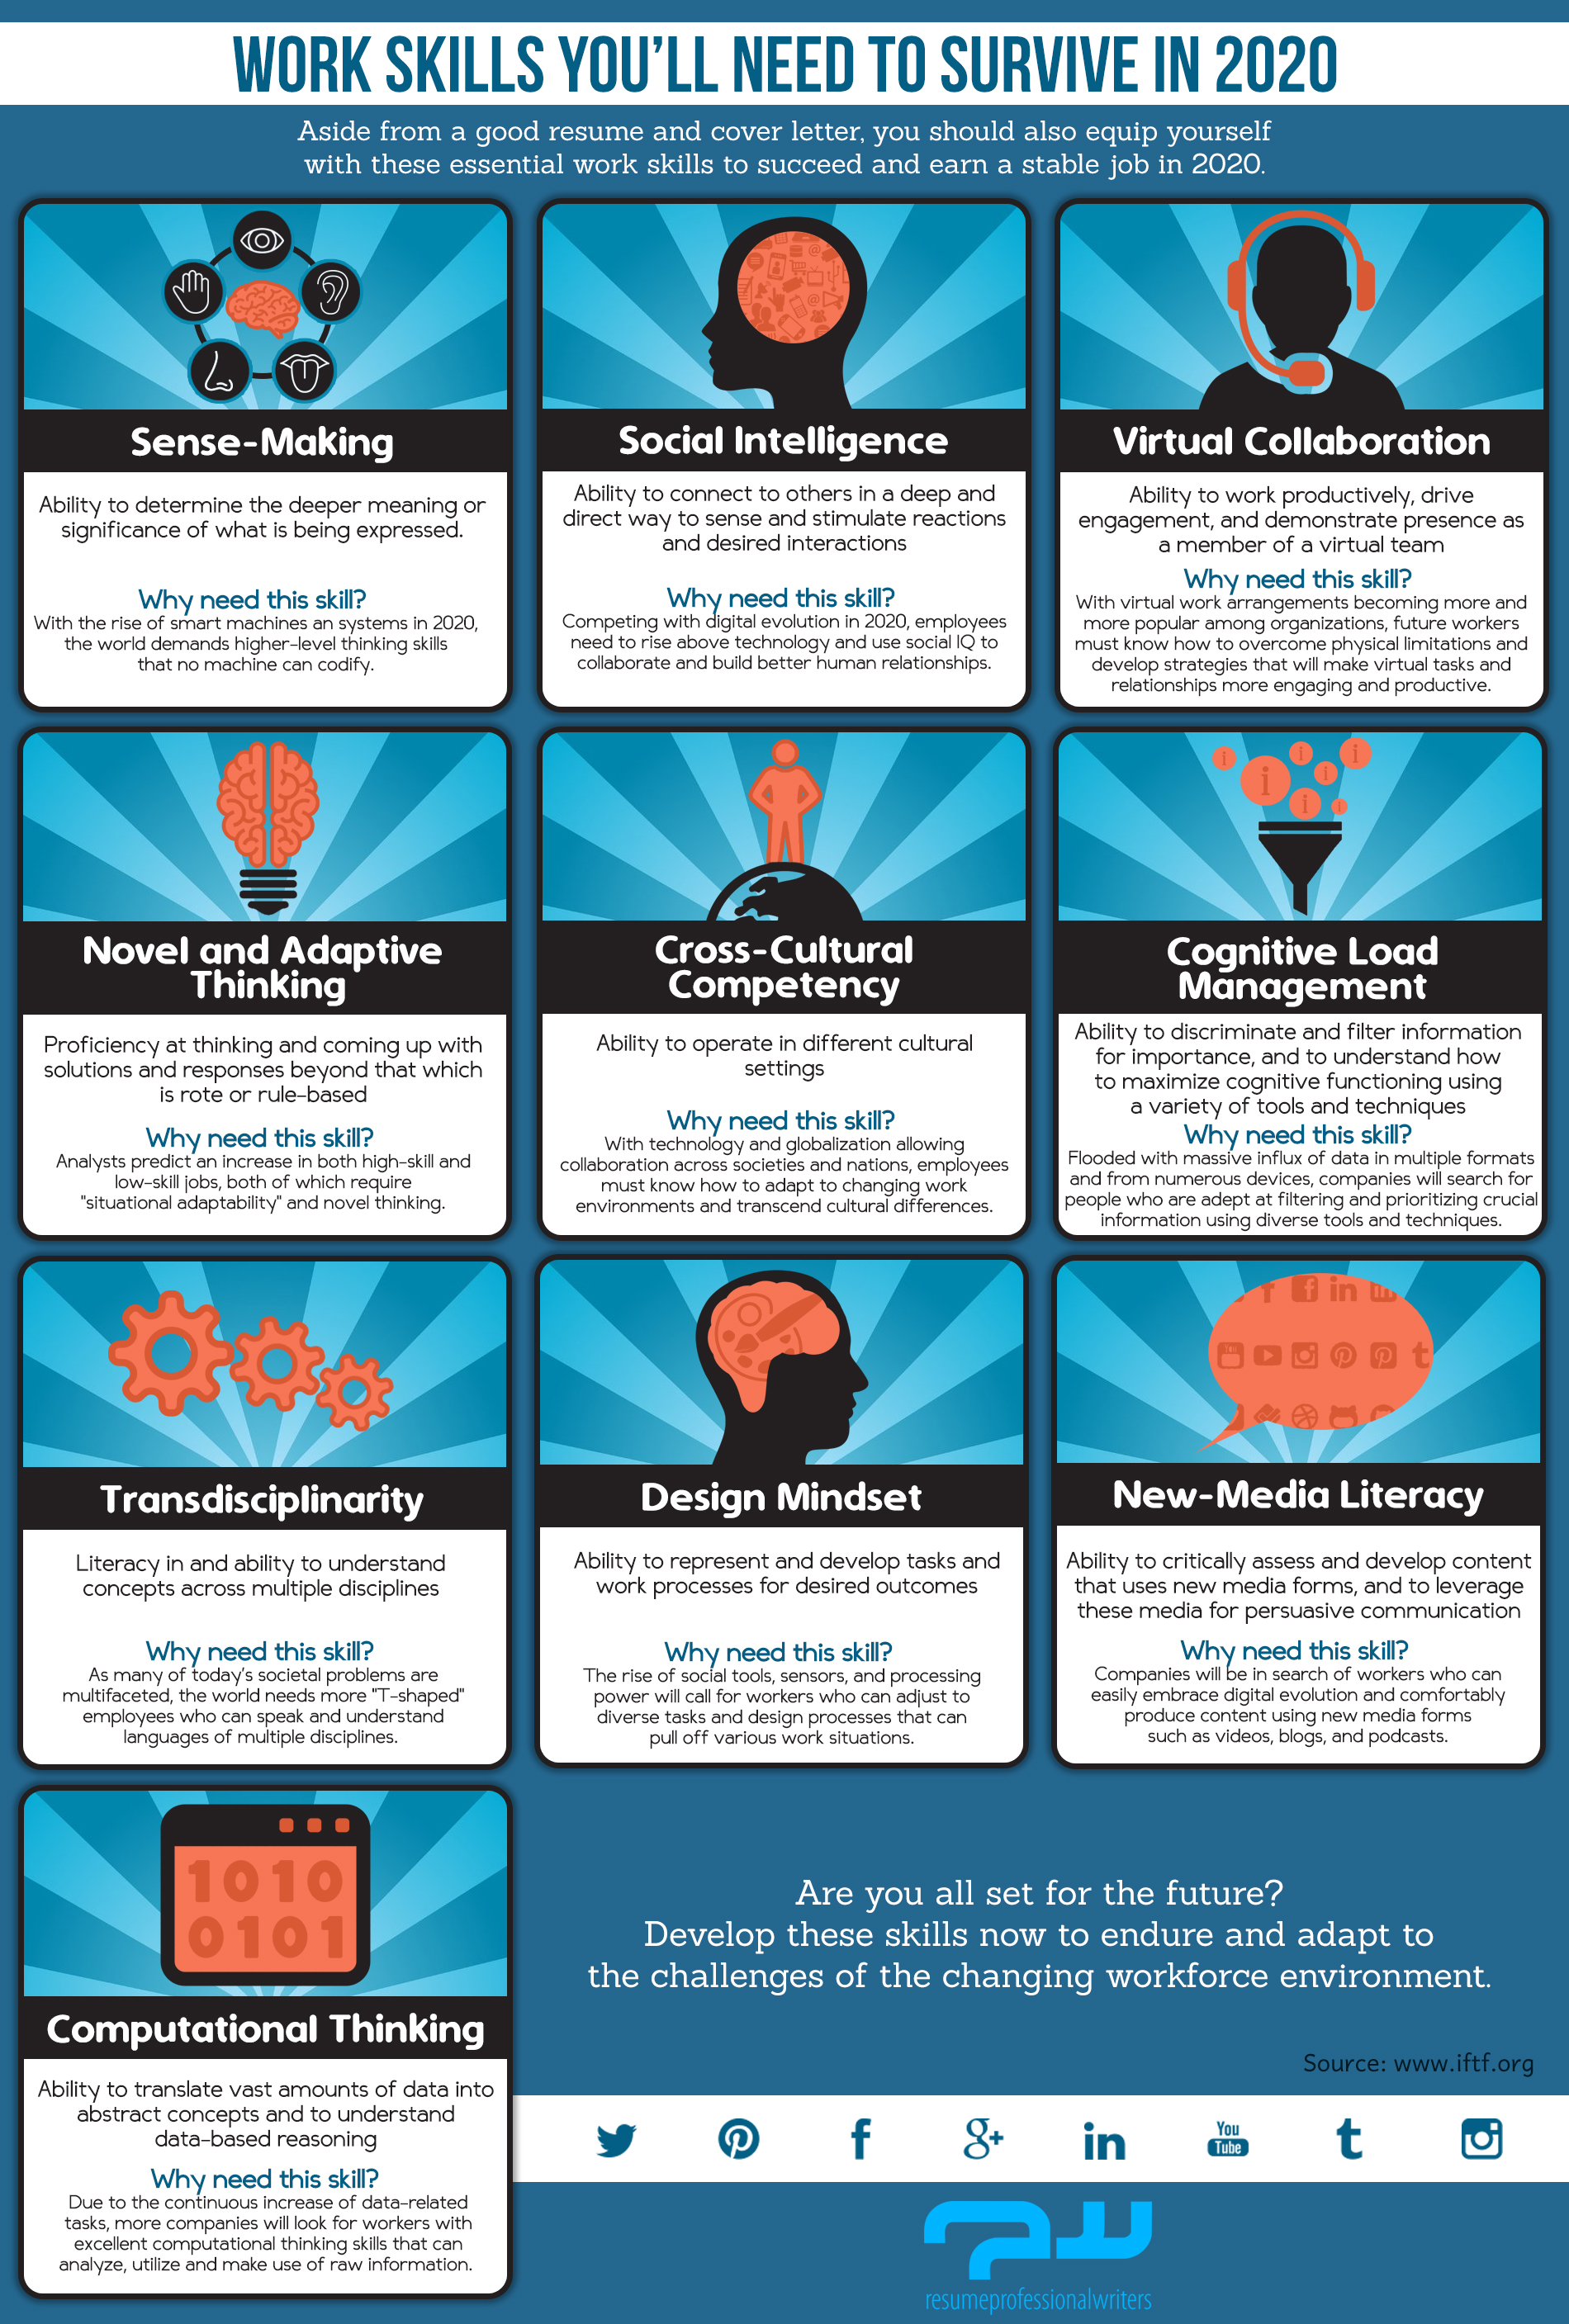 Work Skills You Will Need to Survive in 2020 Infographic